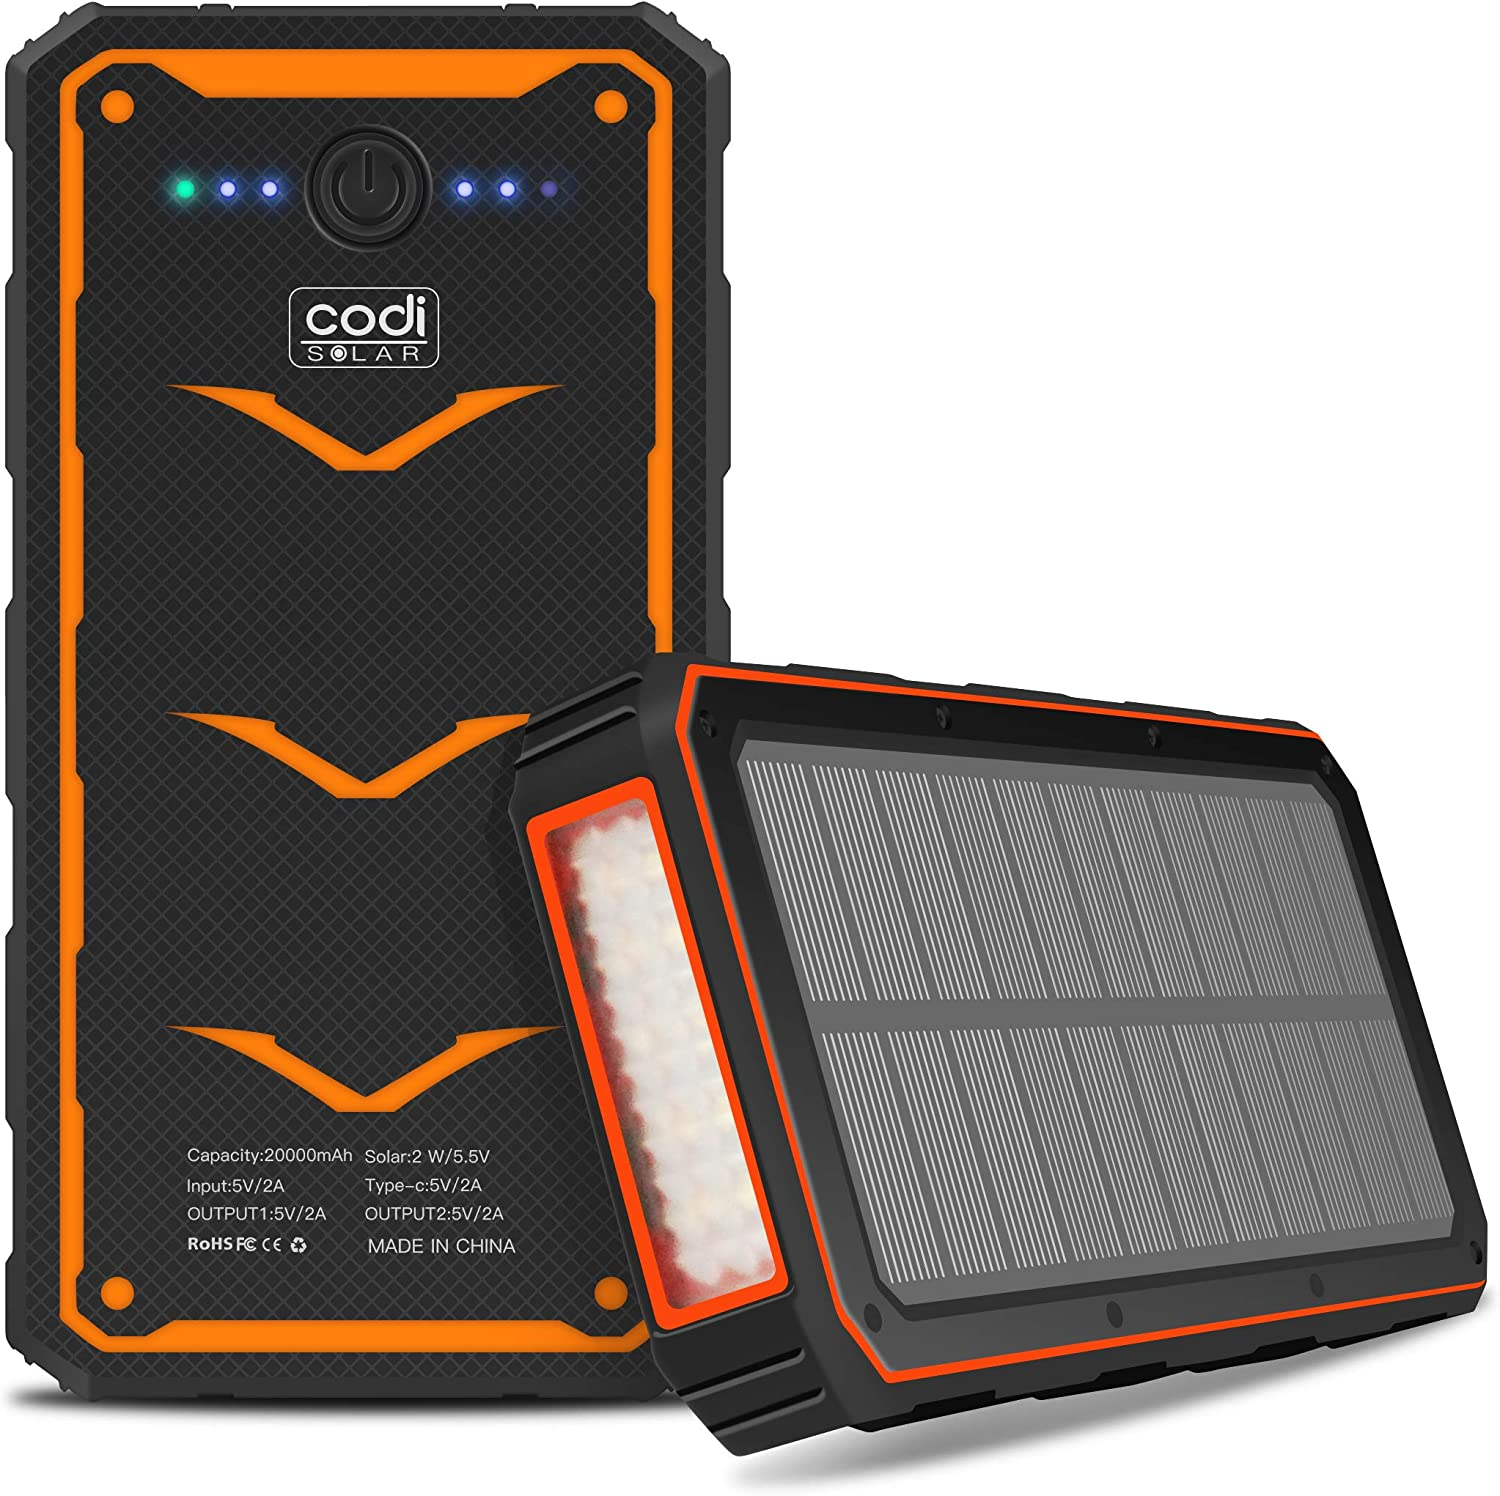 Codi Solar Portable 20000mAh Outdoor Solar Charger Power Bank with Dual USB Output and Led Light Flashlight for iPhone 12, 12 Pro, 12 Pro Max, Samsung Galaxy S21 Ultra 5G, S21+ 5G, S21 5G